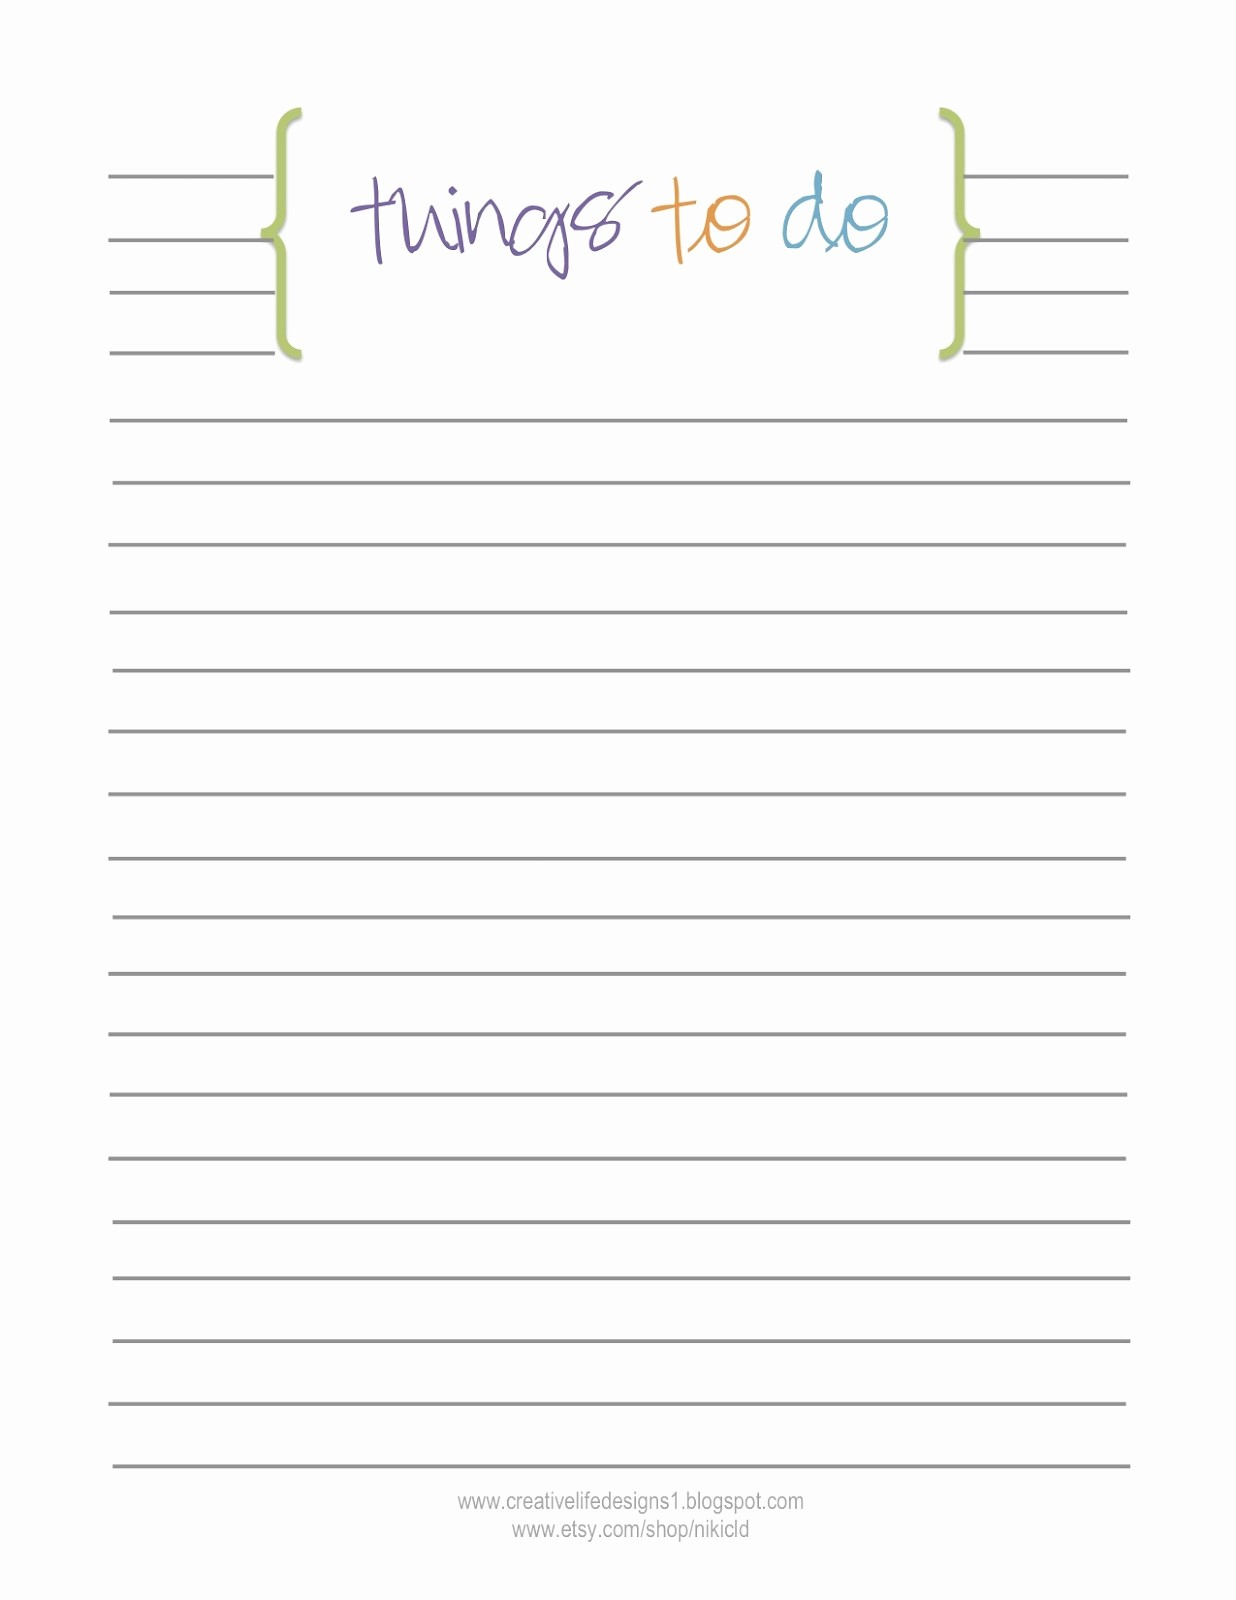 Things to Do List Printable Lovely Creative Life Designs Free Printables